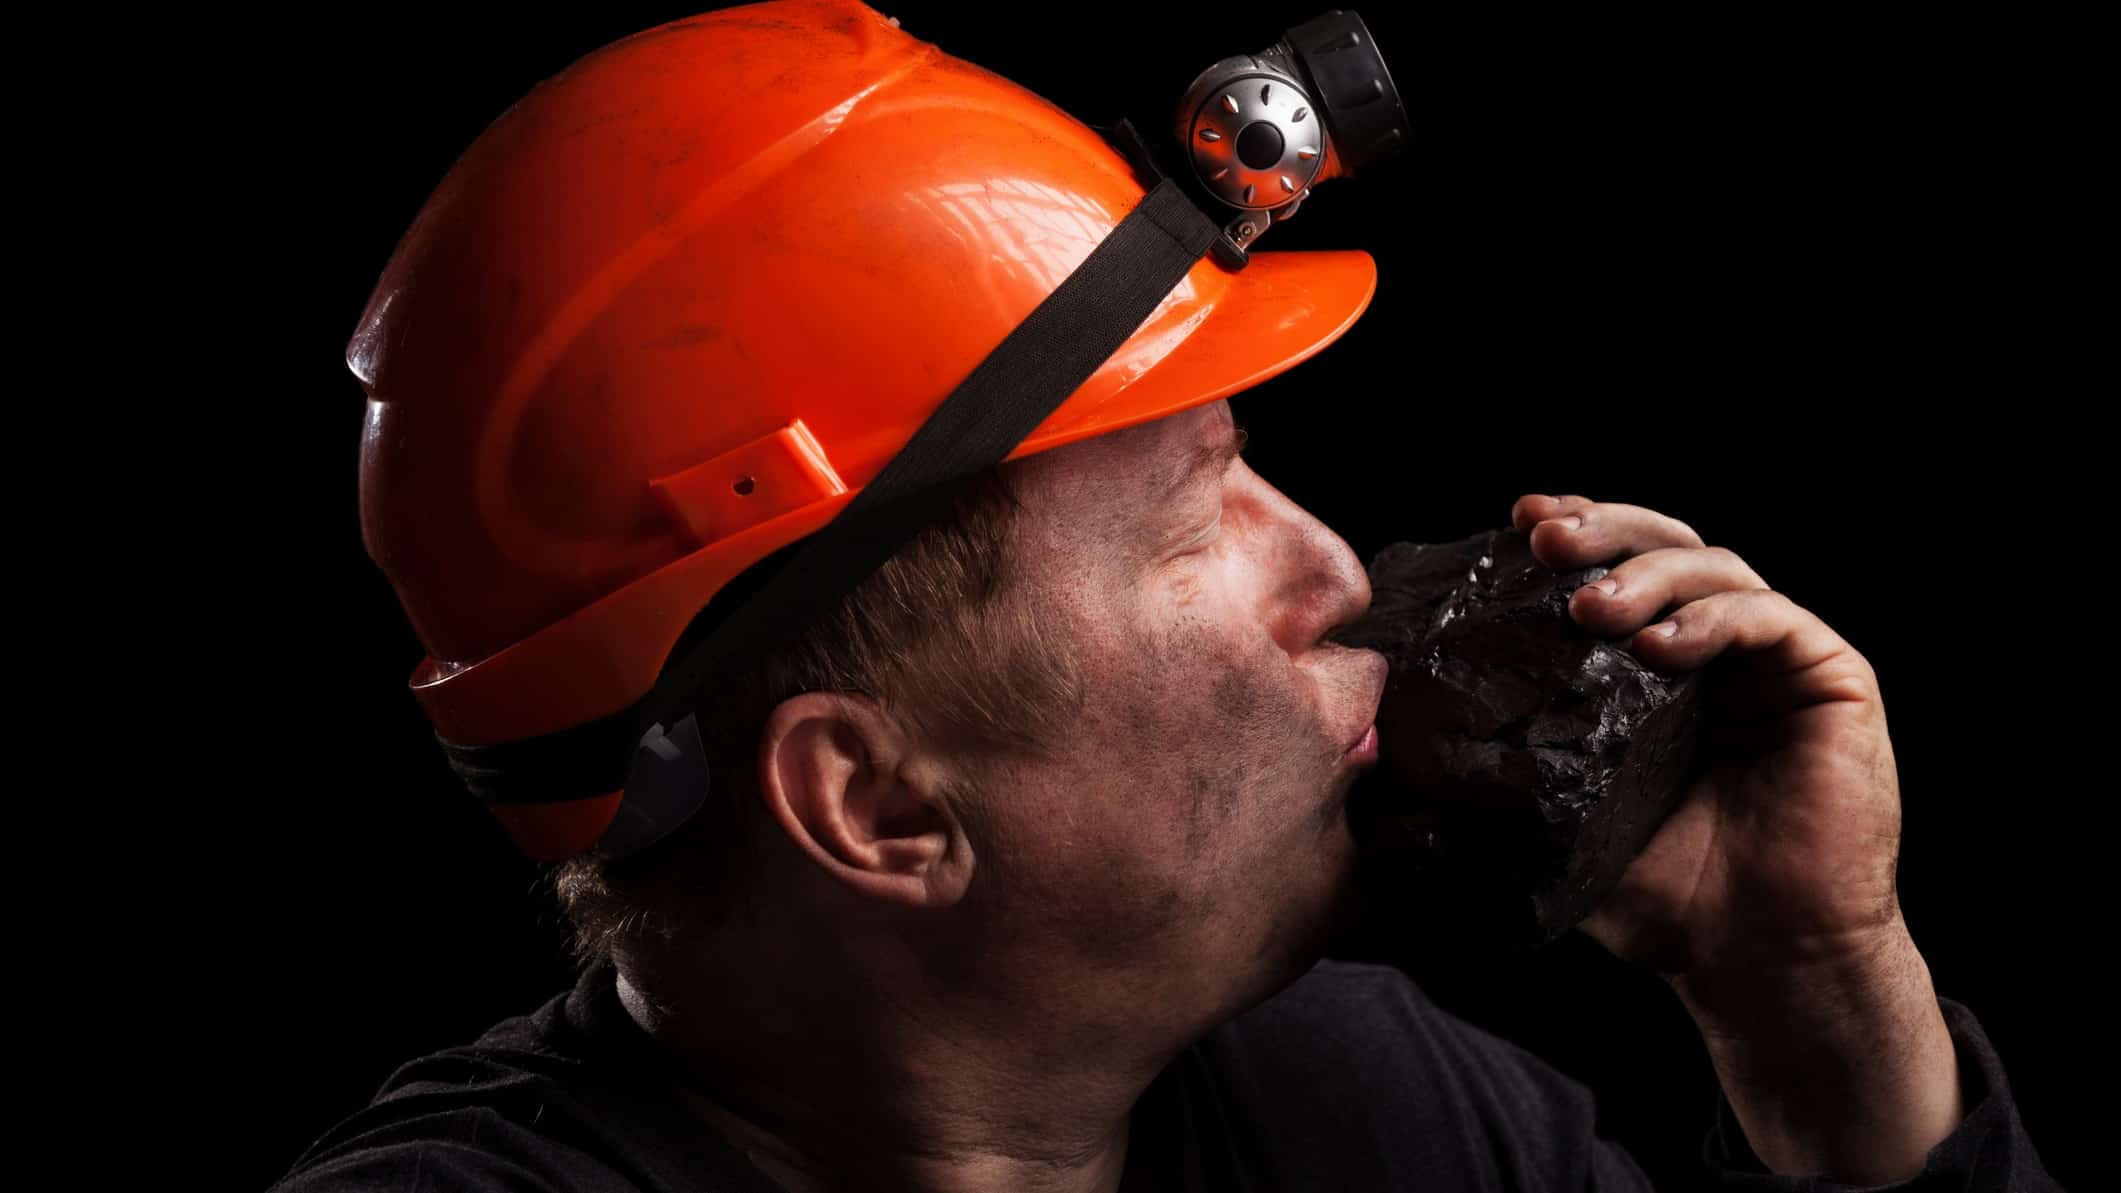 a coal miner in hard hat with a light on it kisses a large lump of coal that he is holding in his hand.